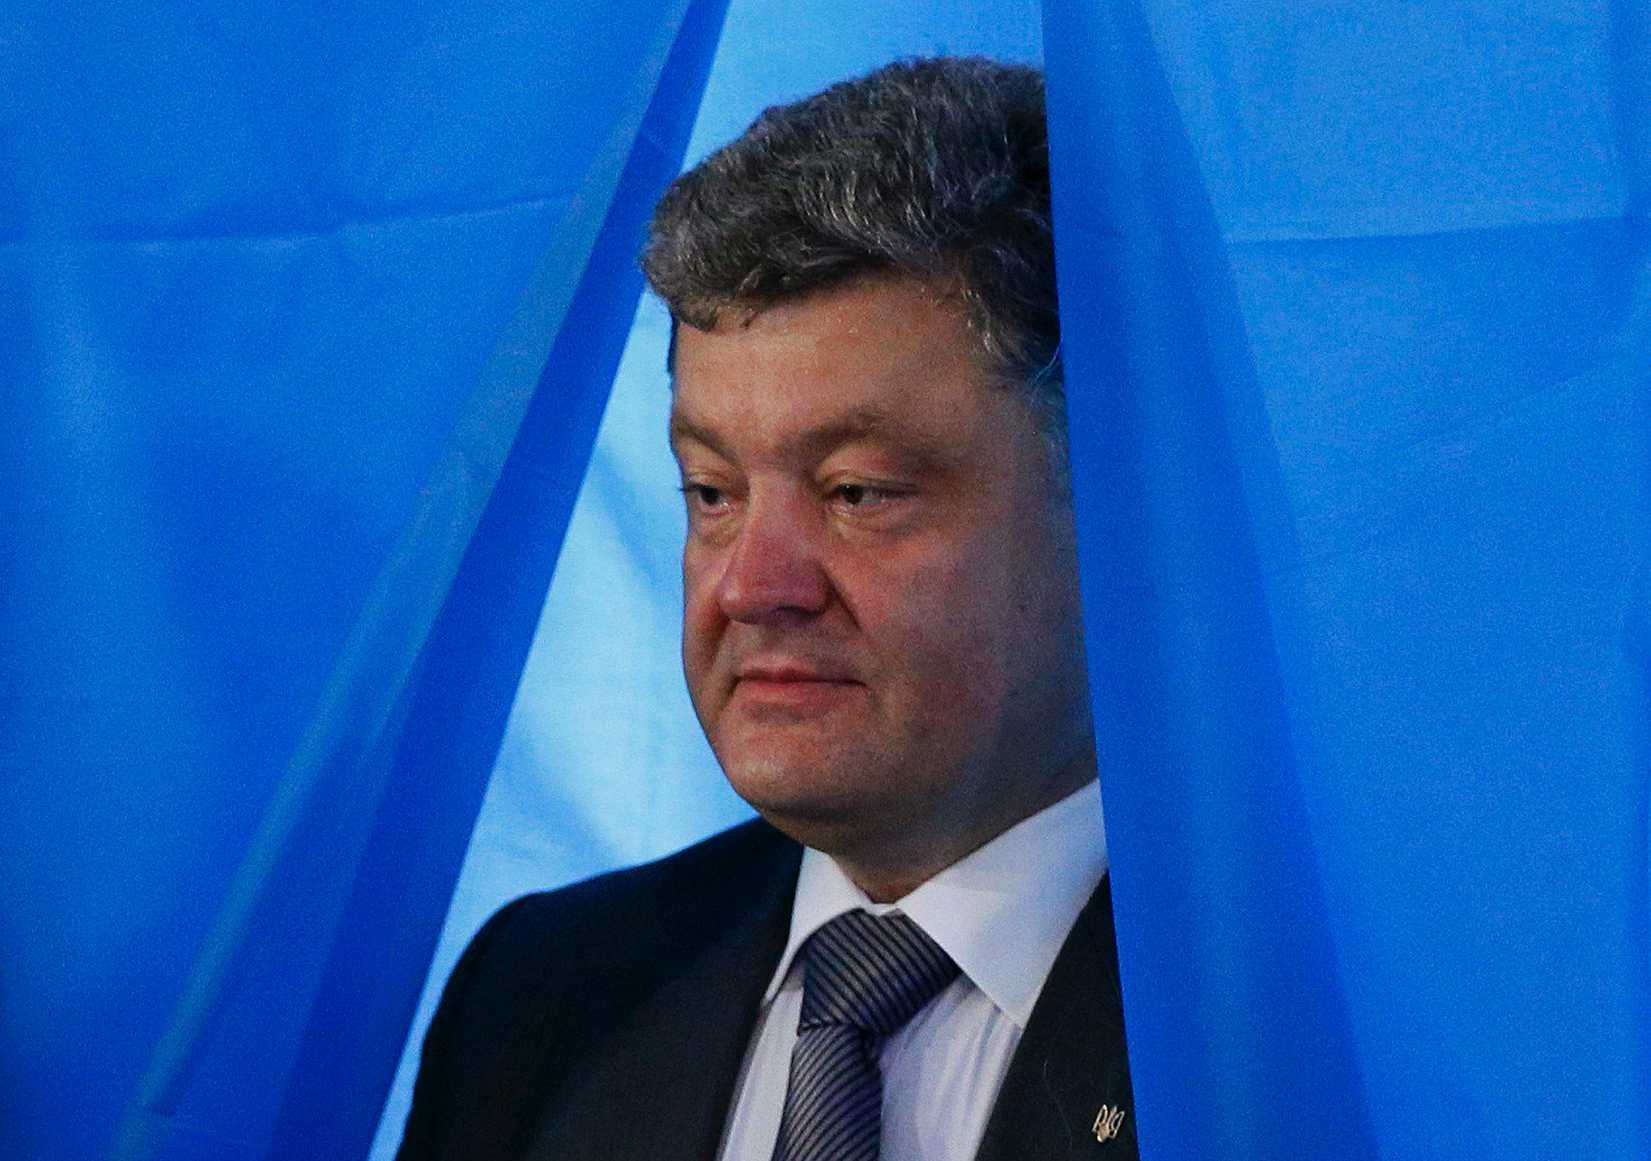 Ukrainian businessman, politician and presidential candidate Petro Poroshenko leaves a booth before casting his vote at a polling station in Kiev on May 25, 2014